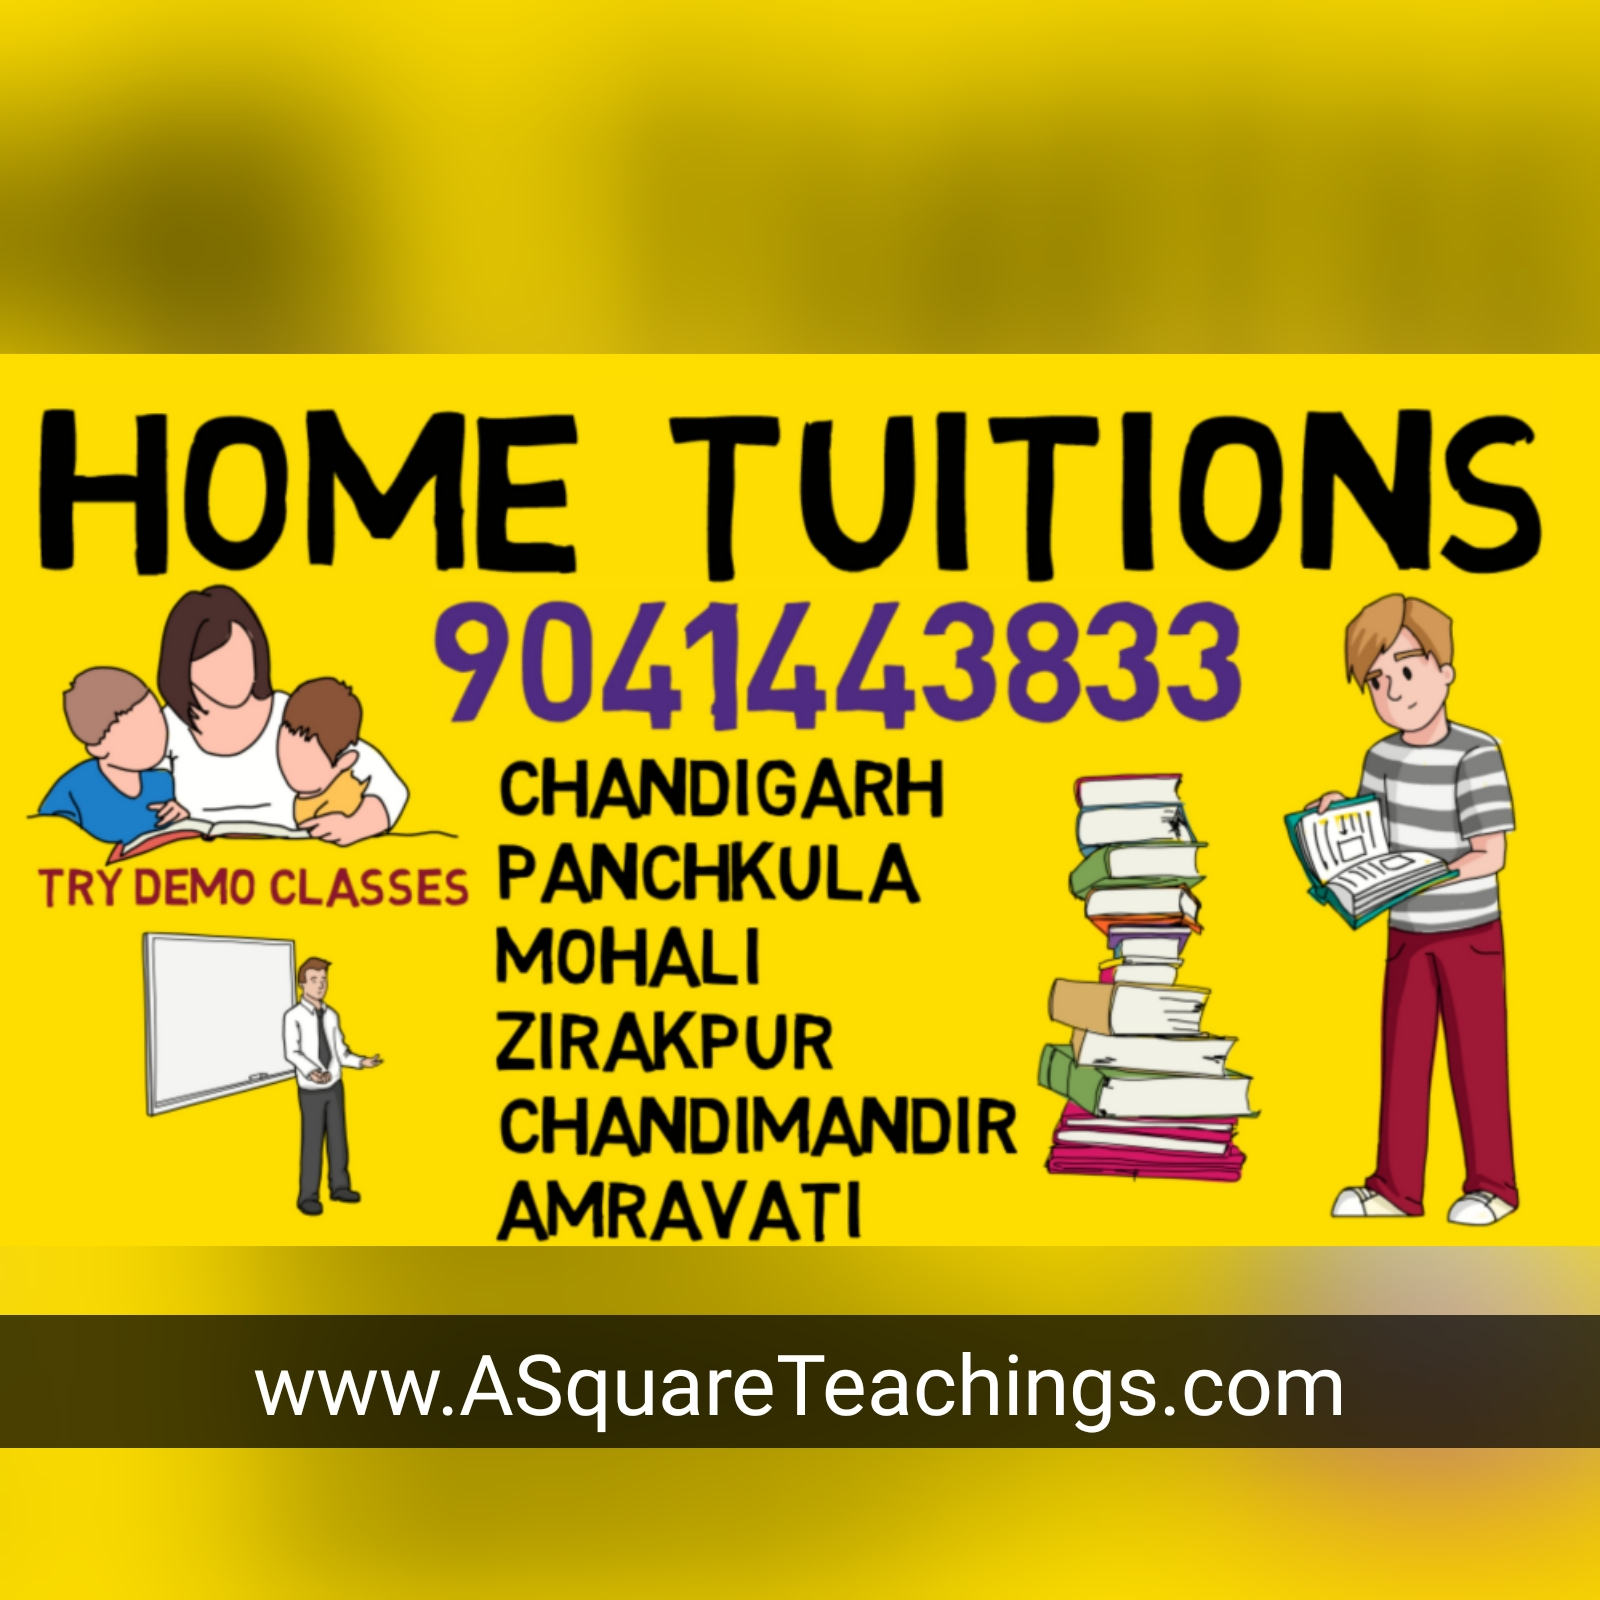 Sofa Olx Amravati Home Tuition Board Design Awesome Home